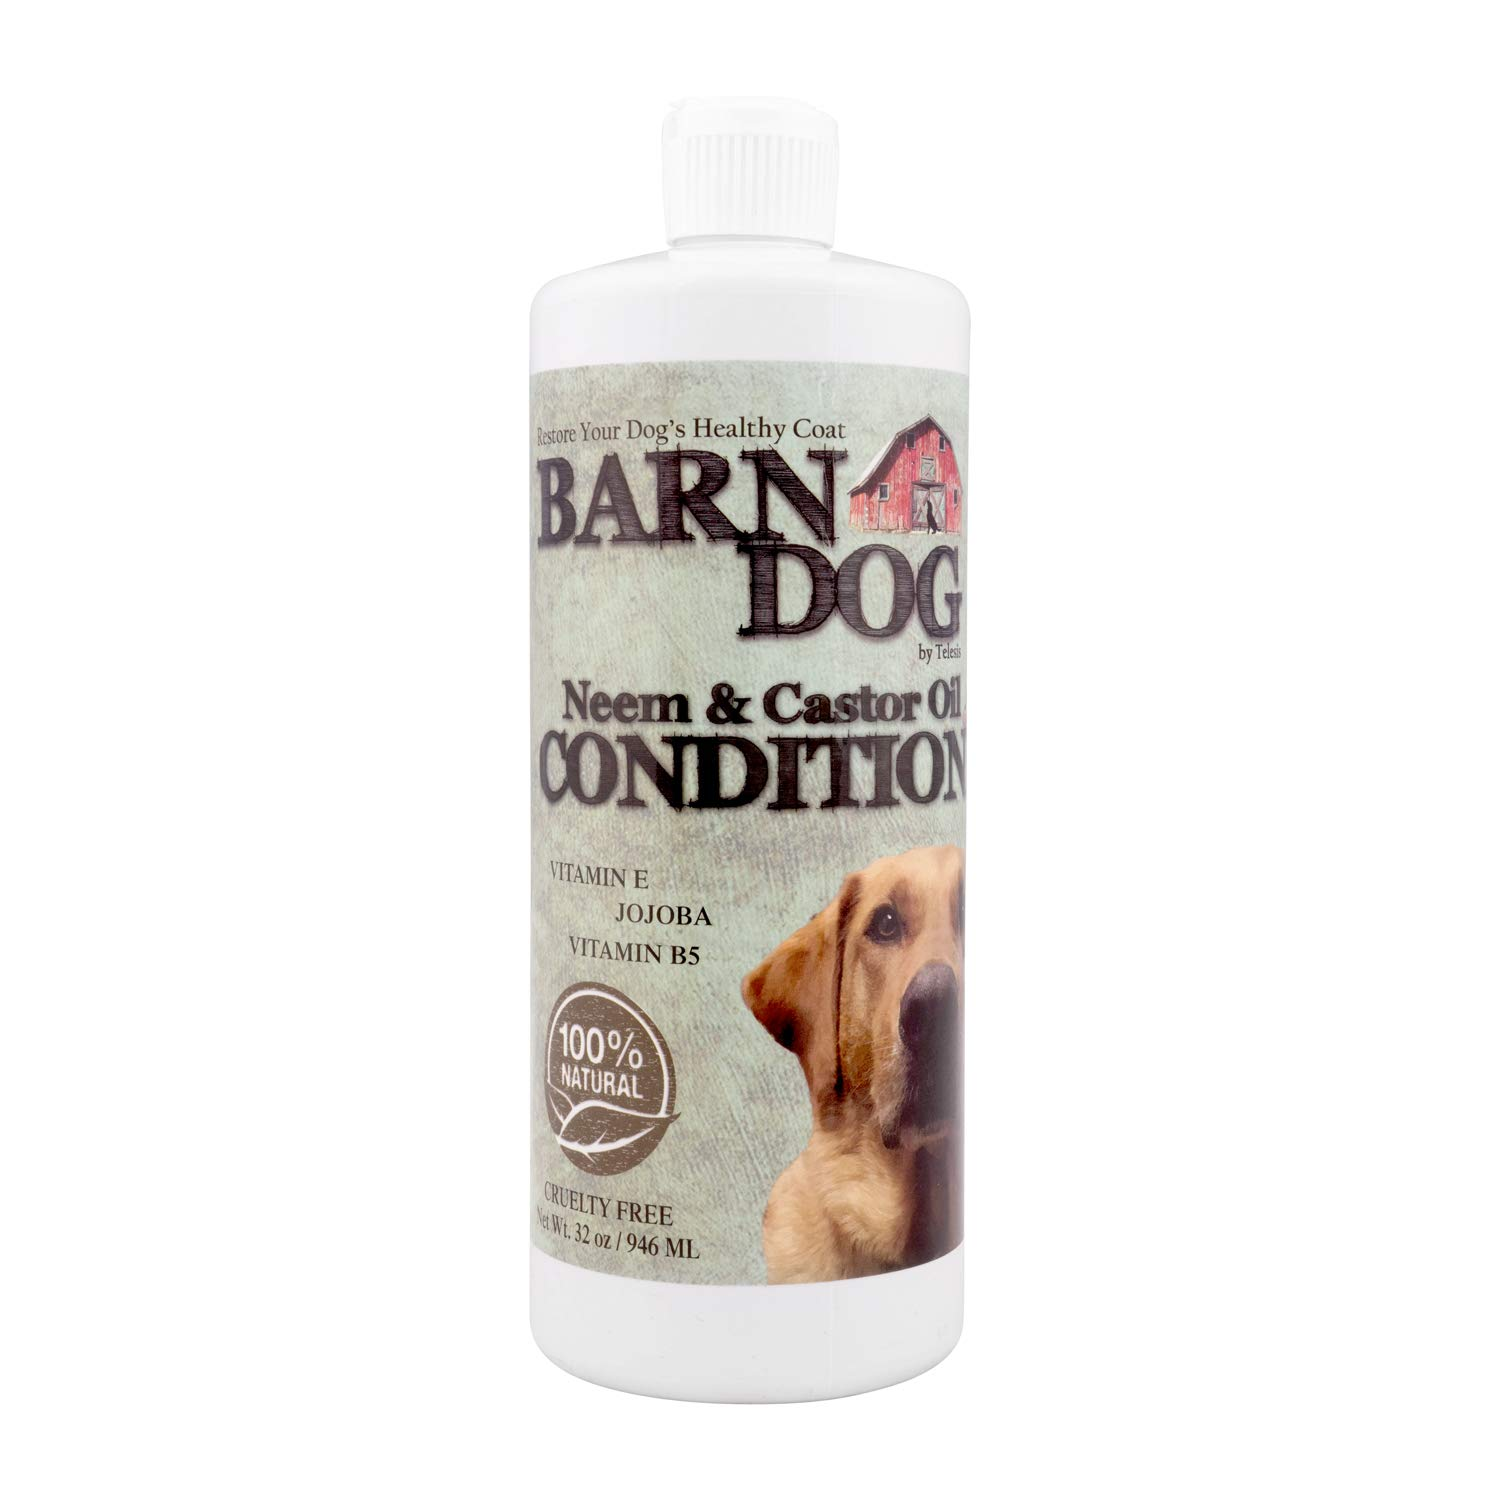 Equiderma Barn Dog Neem & Castor Oil Conditioner